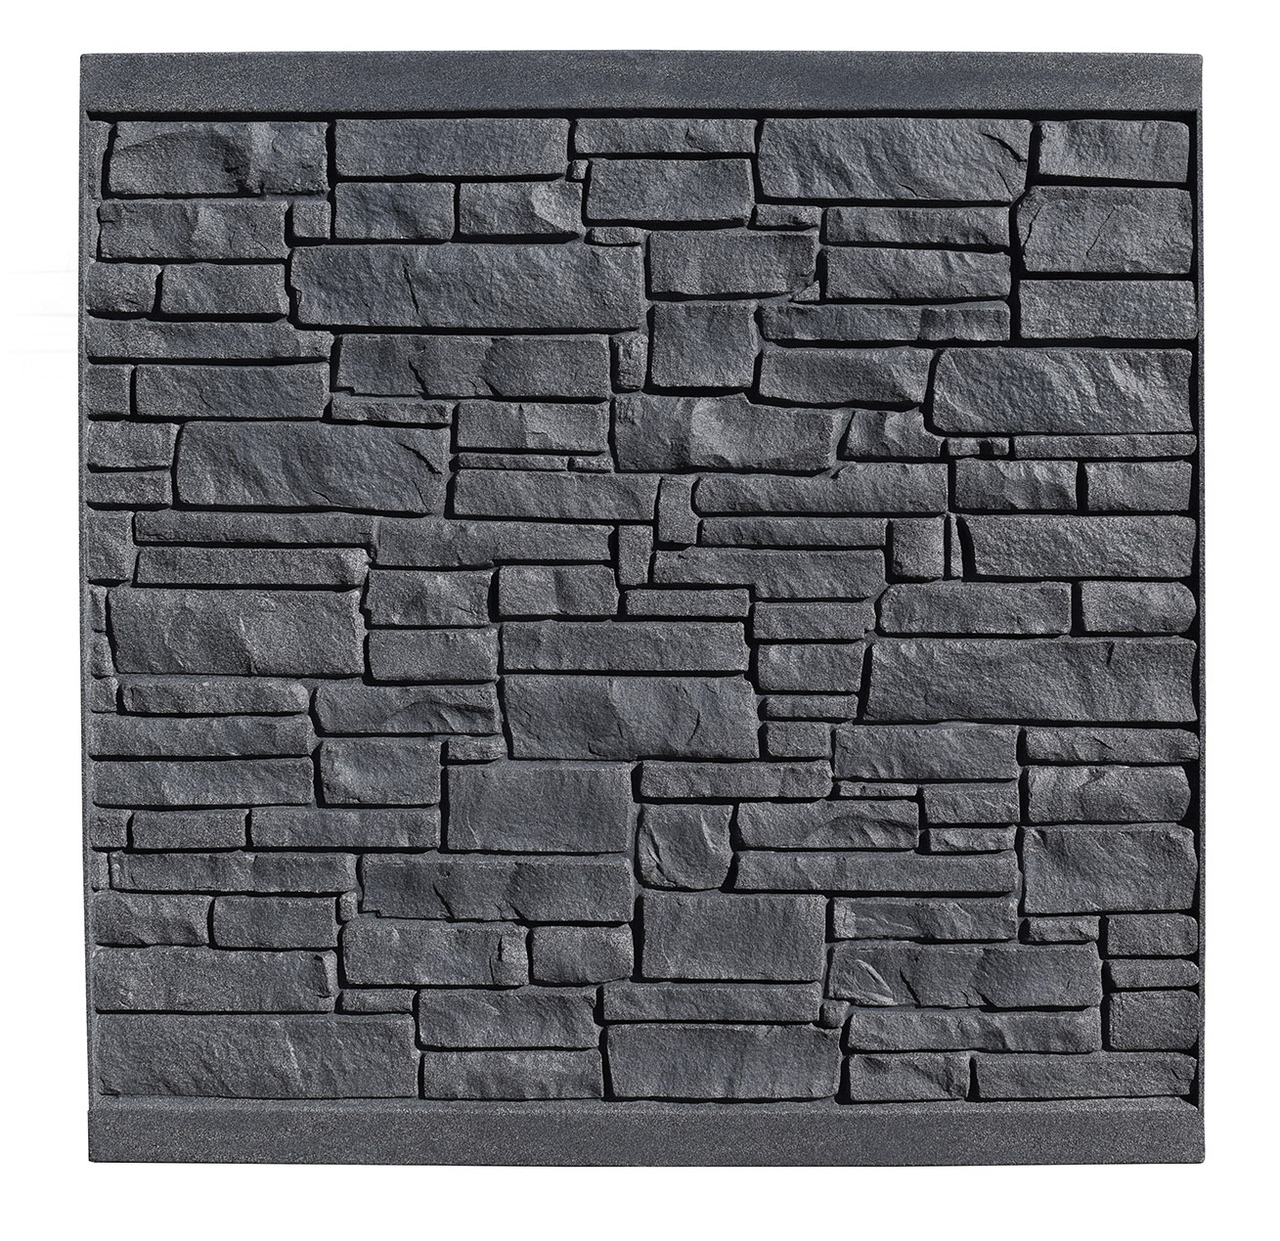 Bufftech Allegheny Molded Fence Panel - Black Granite